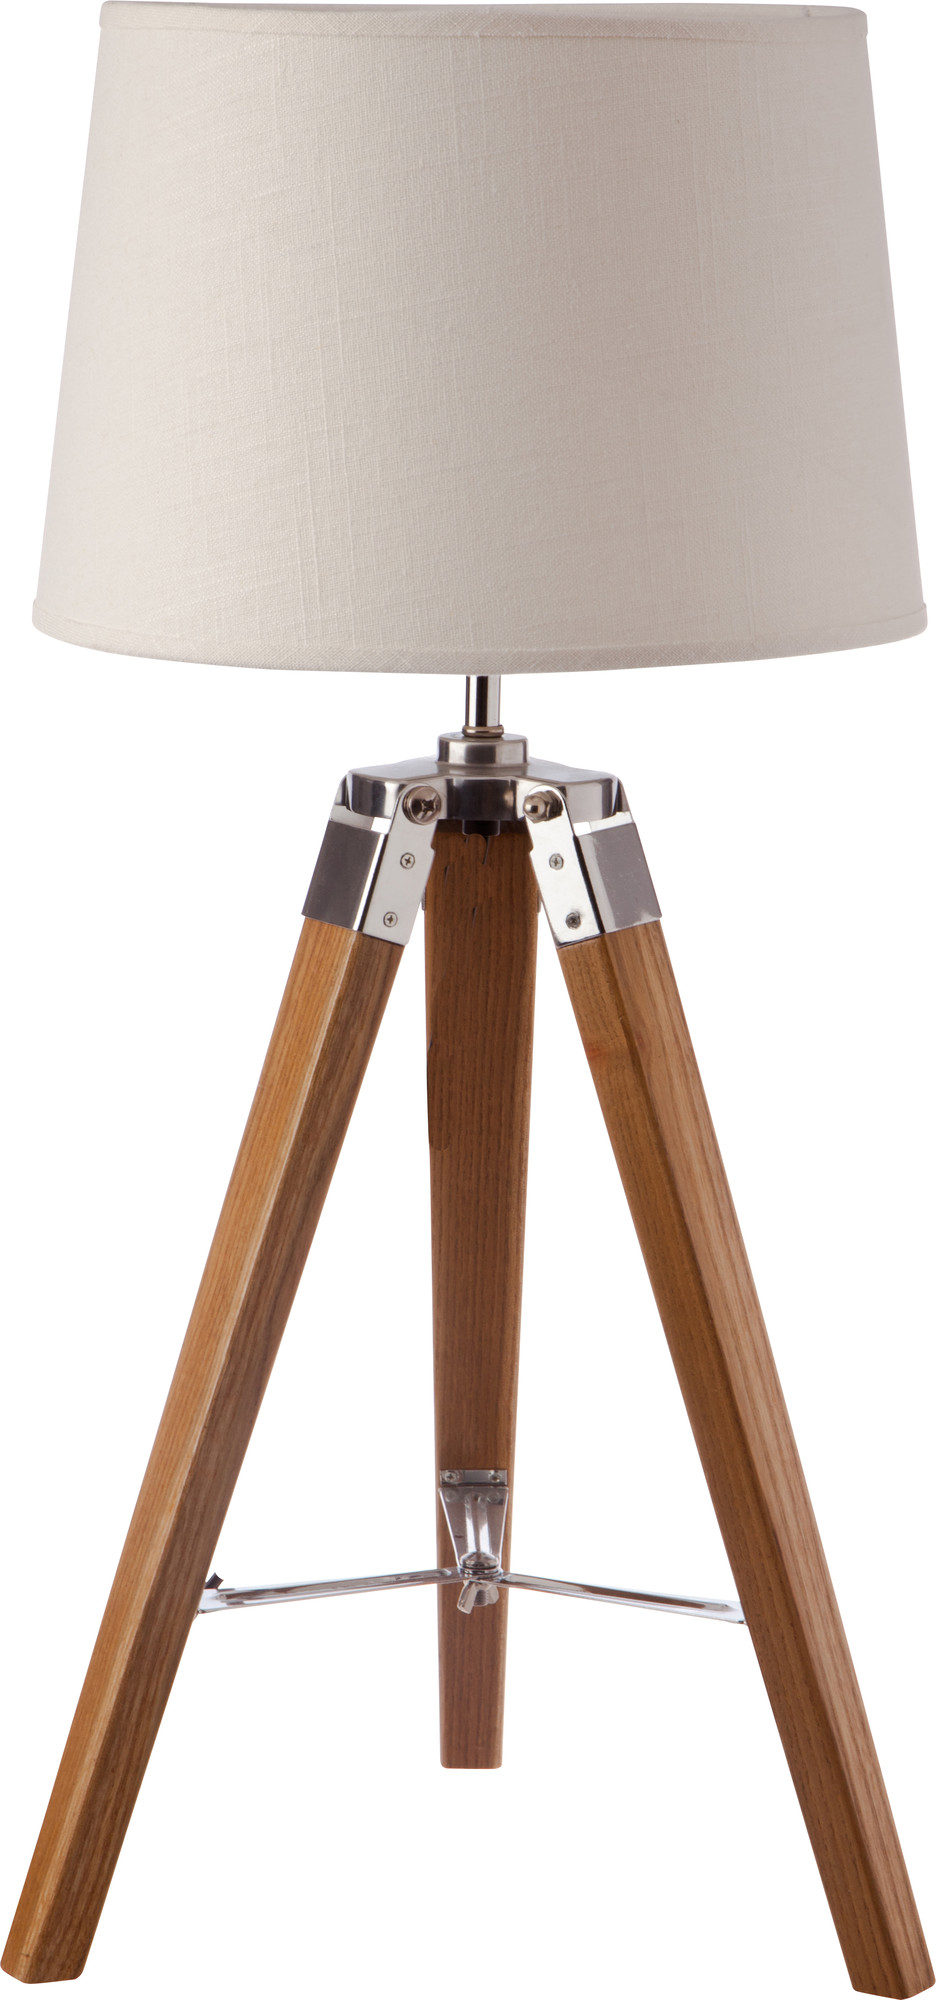 hight resolution of sku neor1007 nicki natural small tripod table lamp is also sometimes listed under the following manufacturer numbers 75004